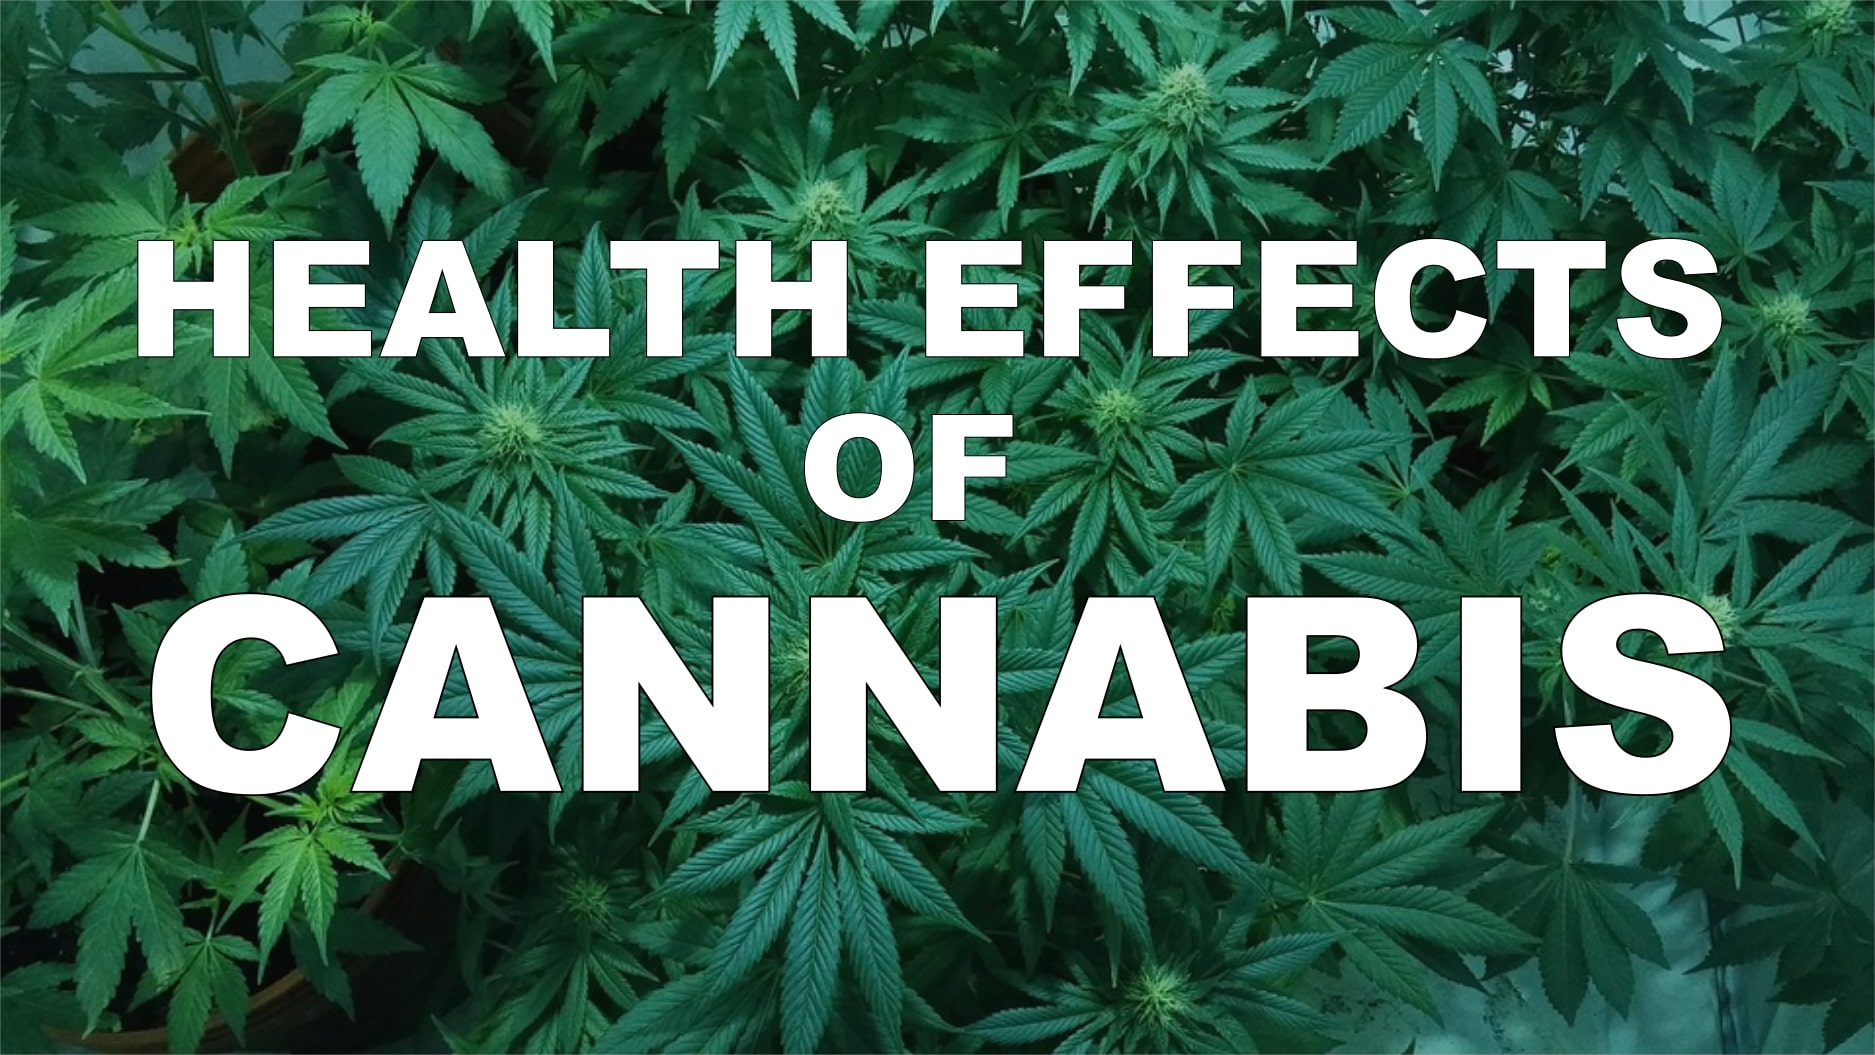 What are the Health Effects of Cannabis?